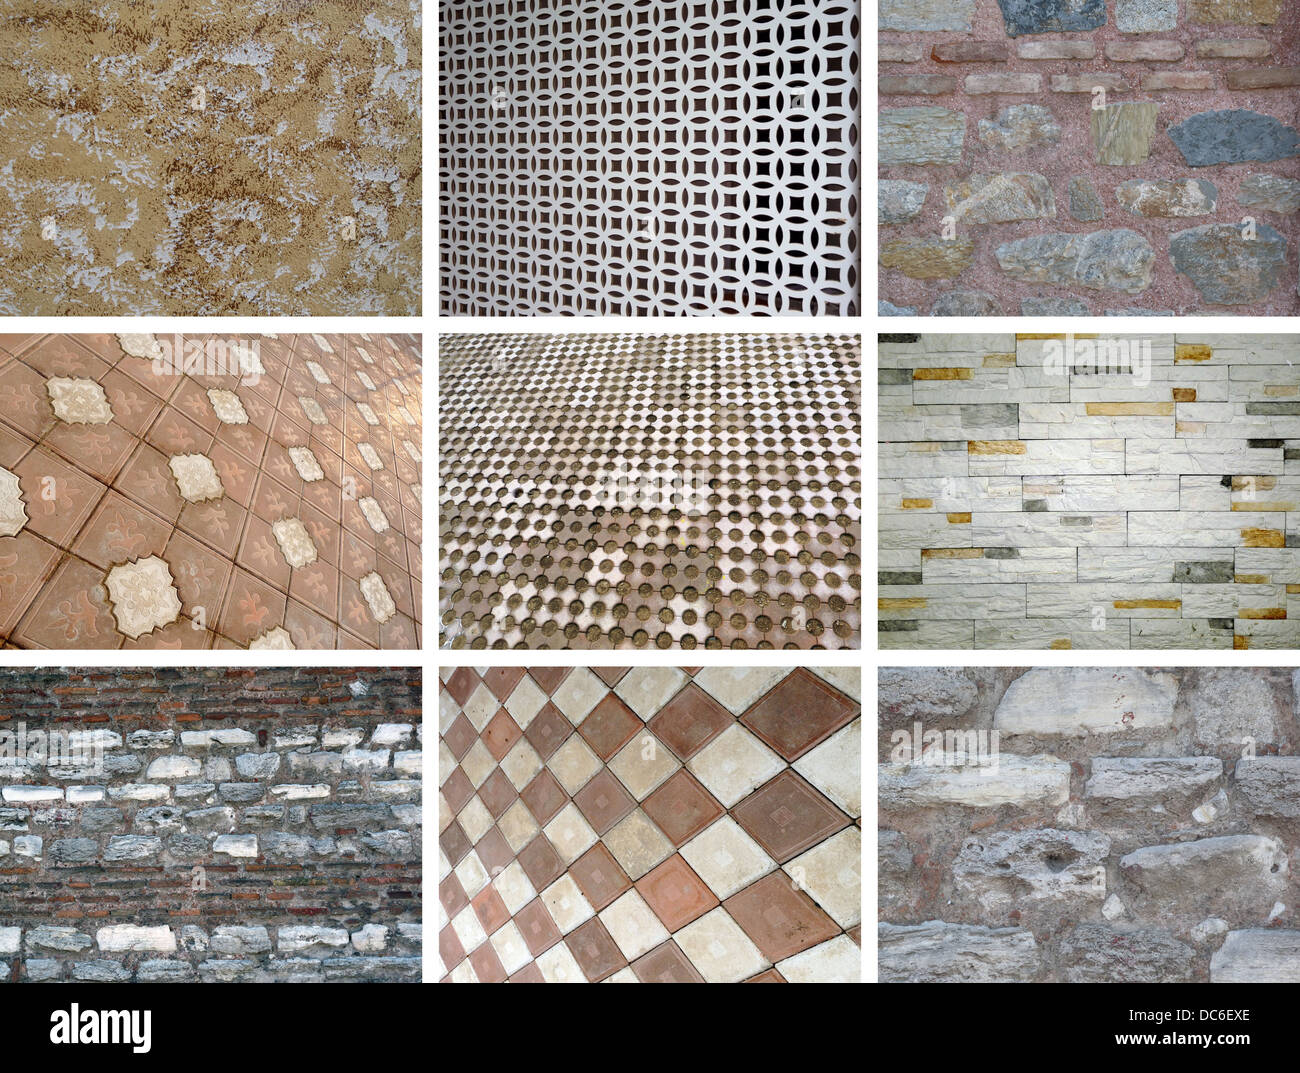 wall collage - Stock Image